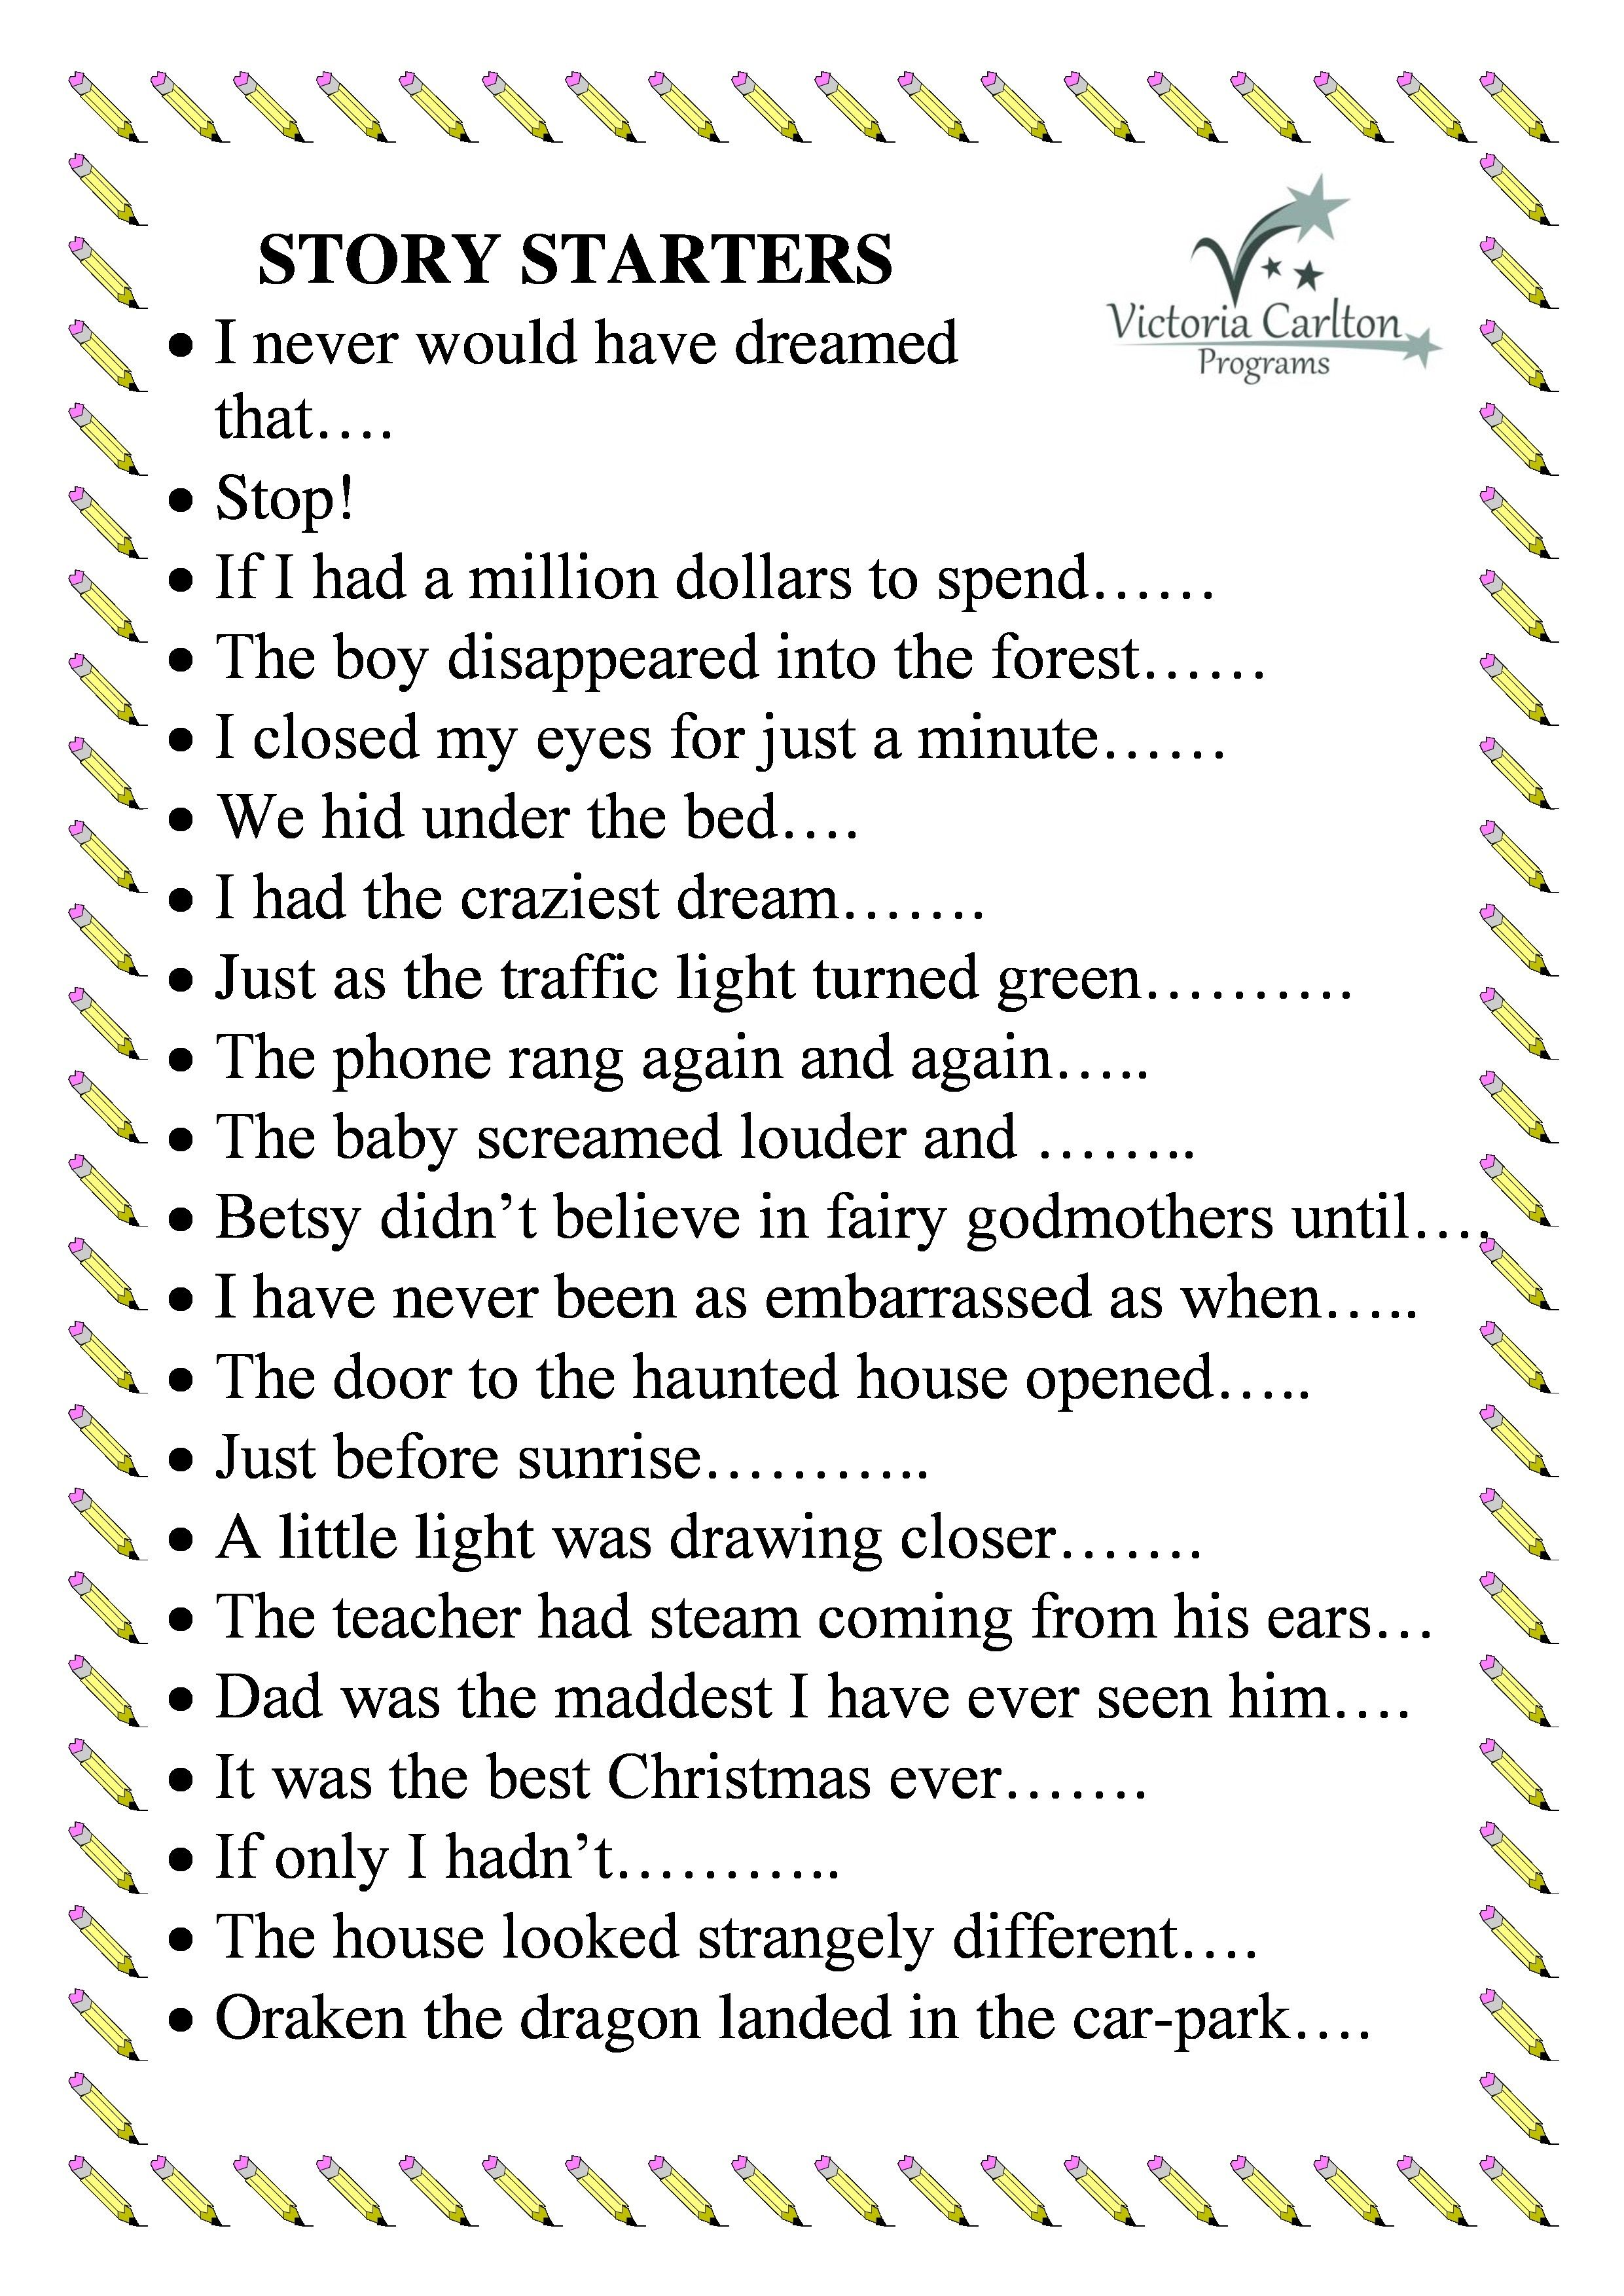 Image Result For Story Starters For Kids